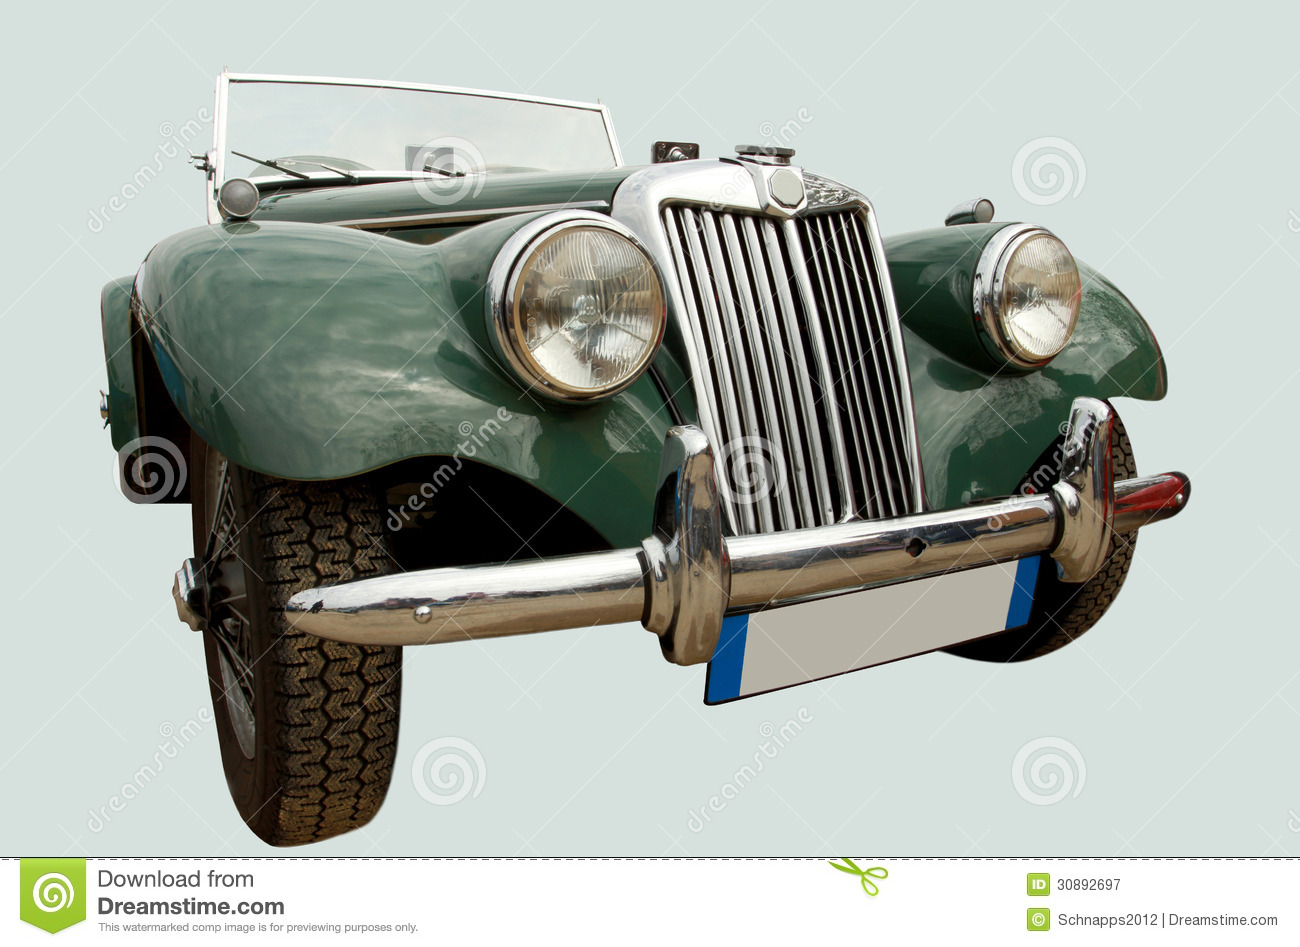 Vintage Sports Car Royalty Free Stock Photography  Image: 30892697